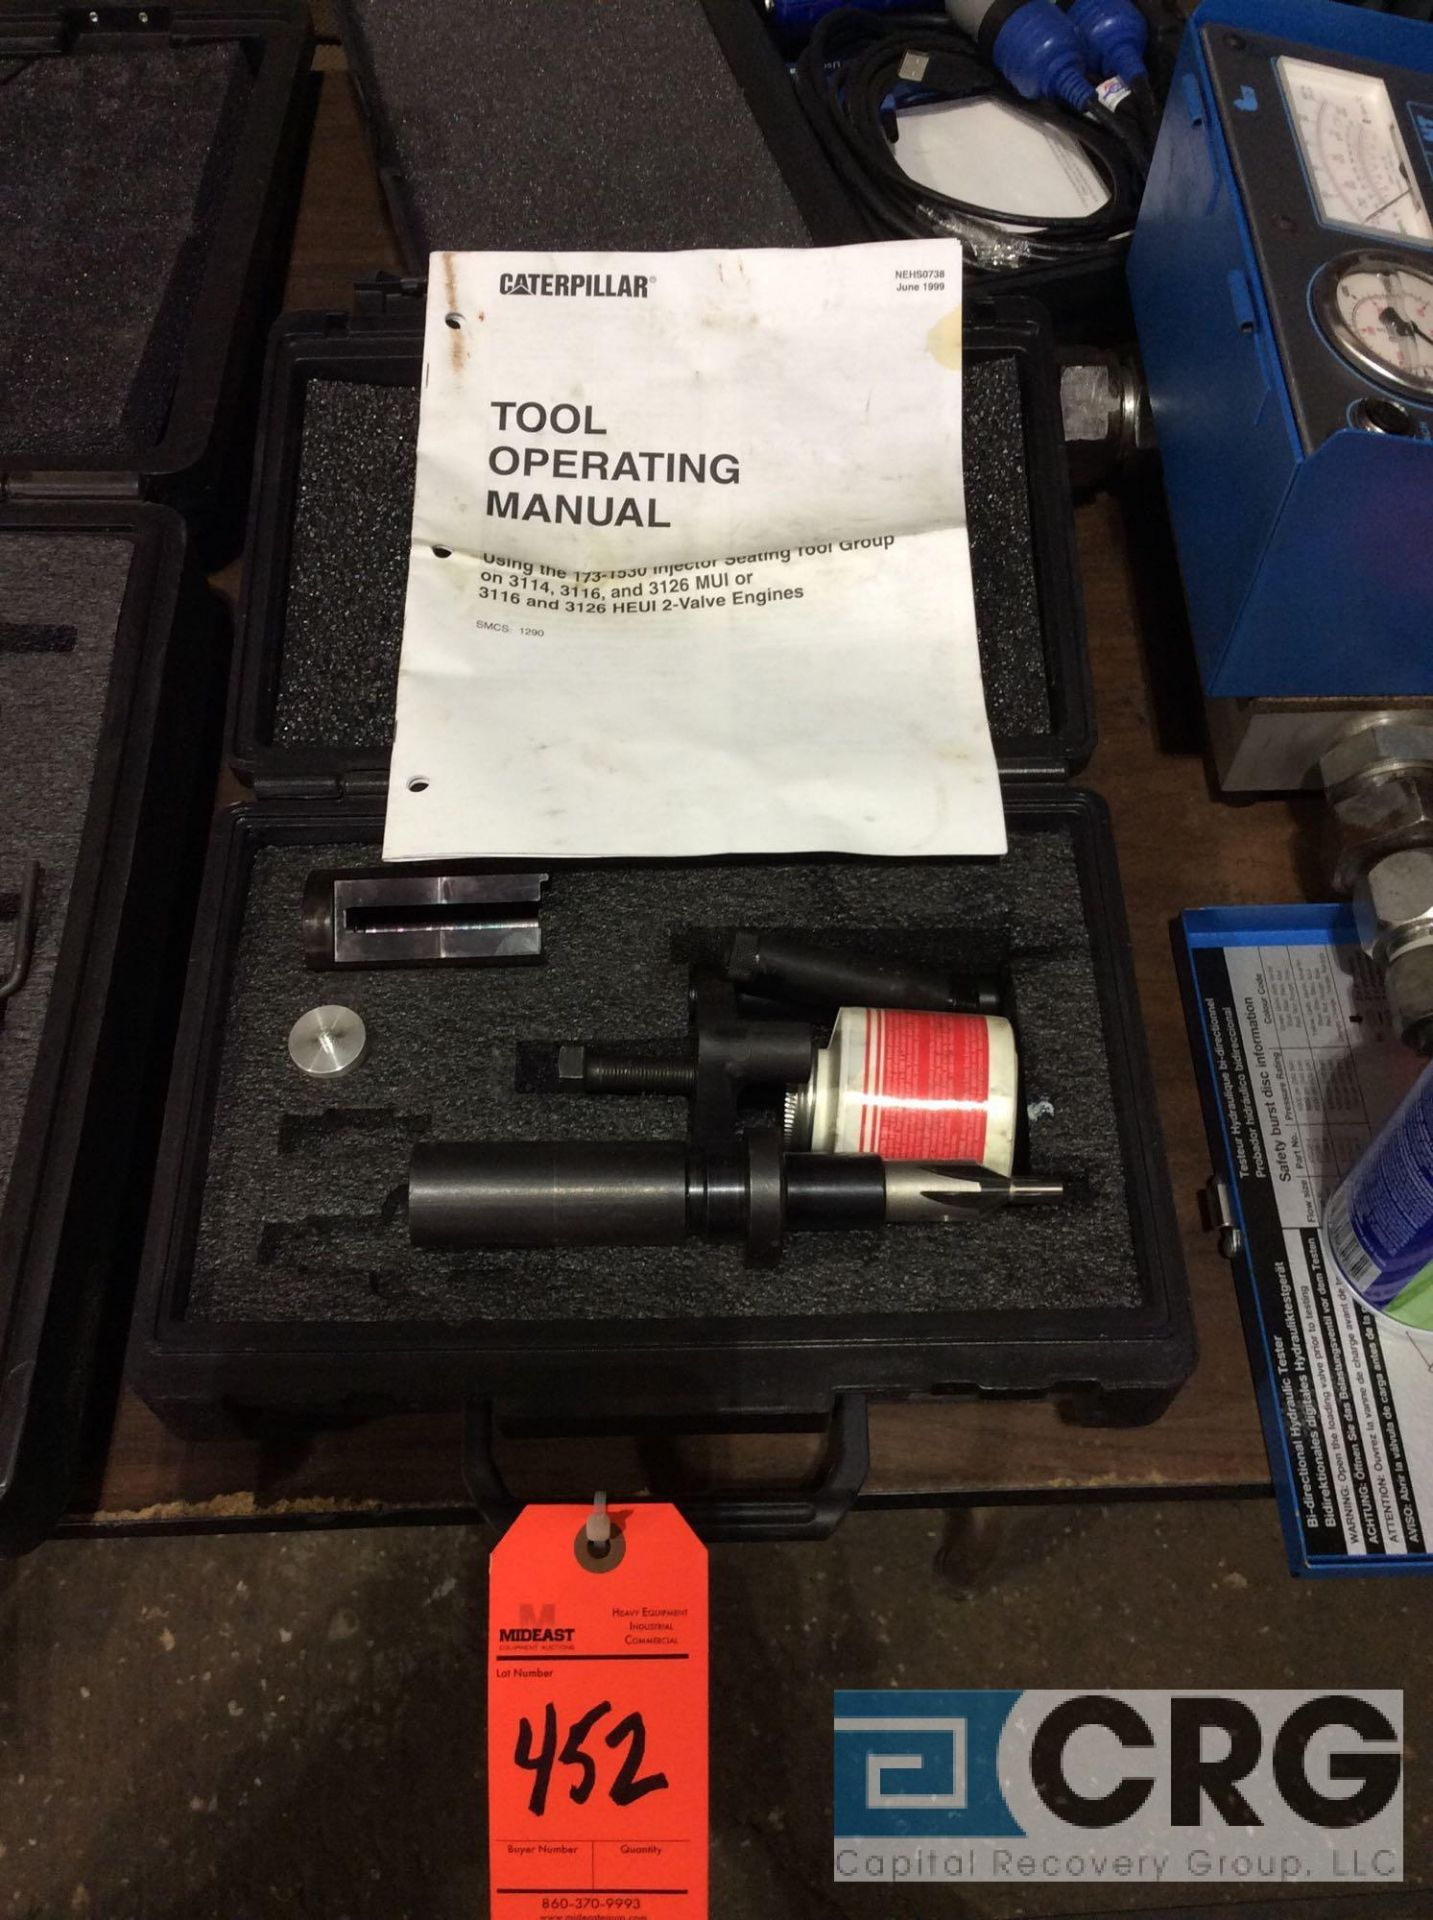 Lot 452 - CAT 173-1530 injector seating tool GP. for 3114,3116, 3126 and 3126 2-valve HEUI injectors